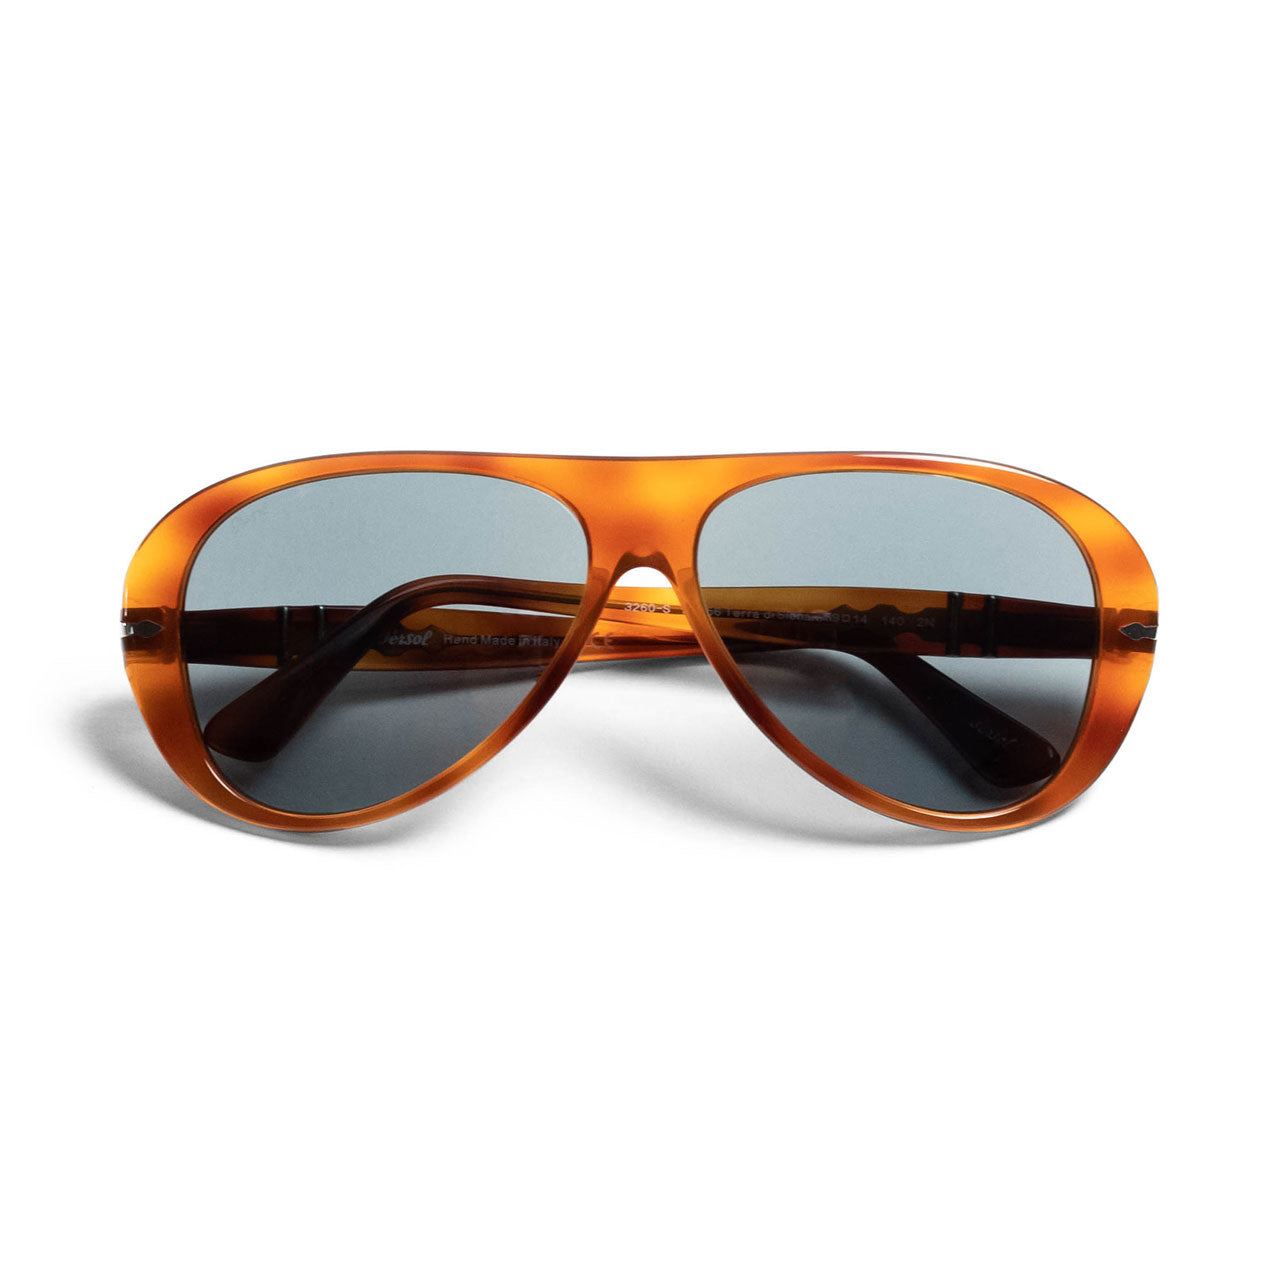 Persol Talented Mr. Ripley Sunglasses